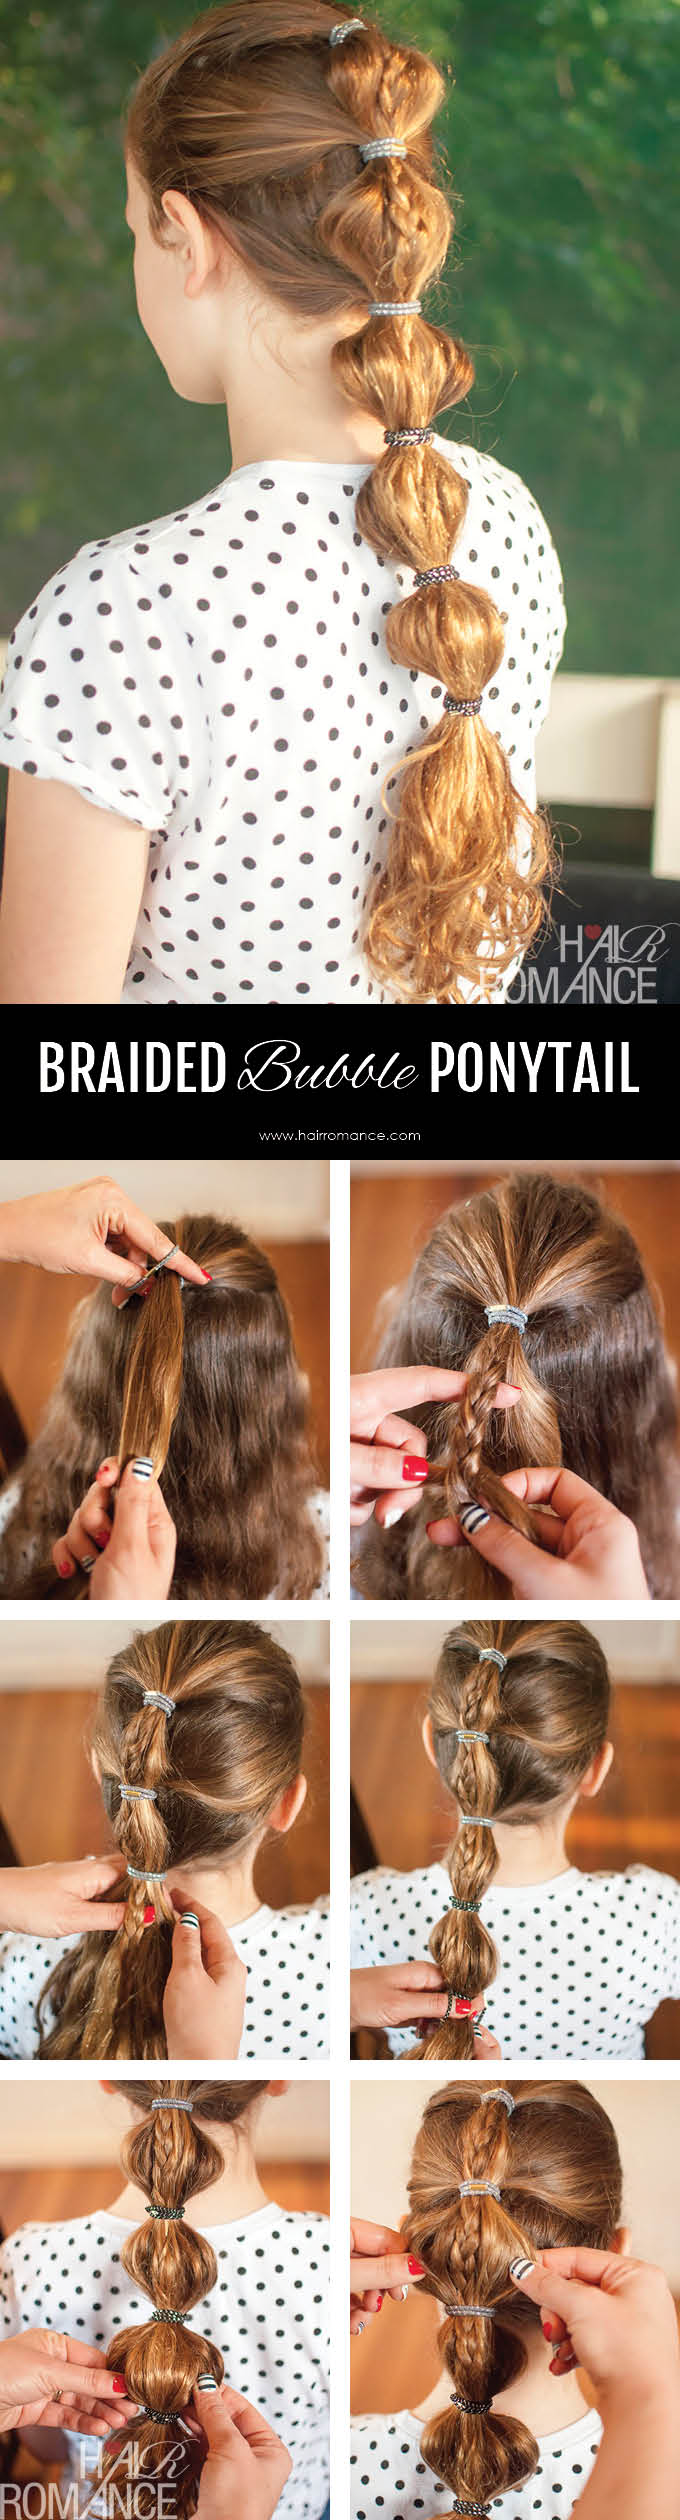 Back to school hairstyles the braided bubble ponytail tutorial